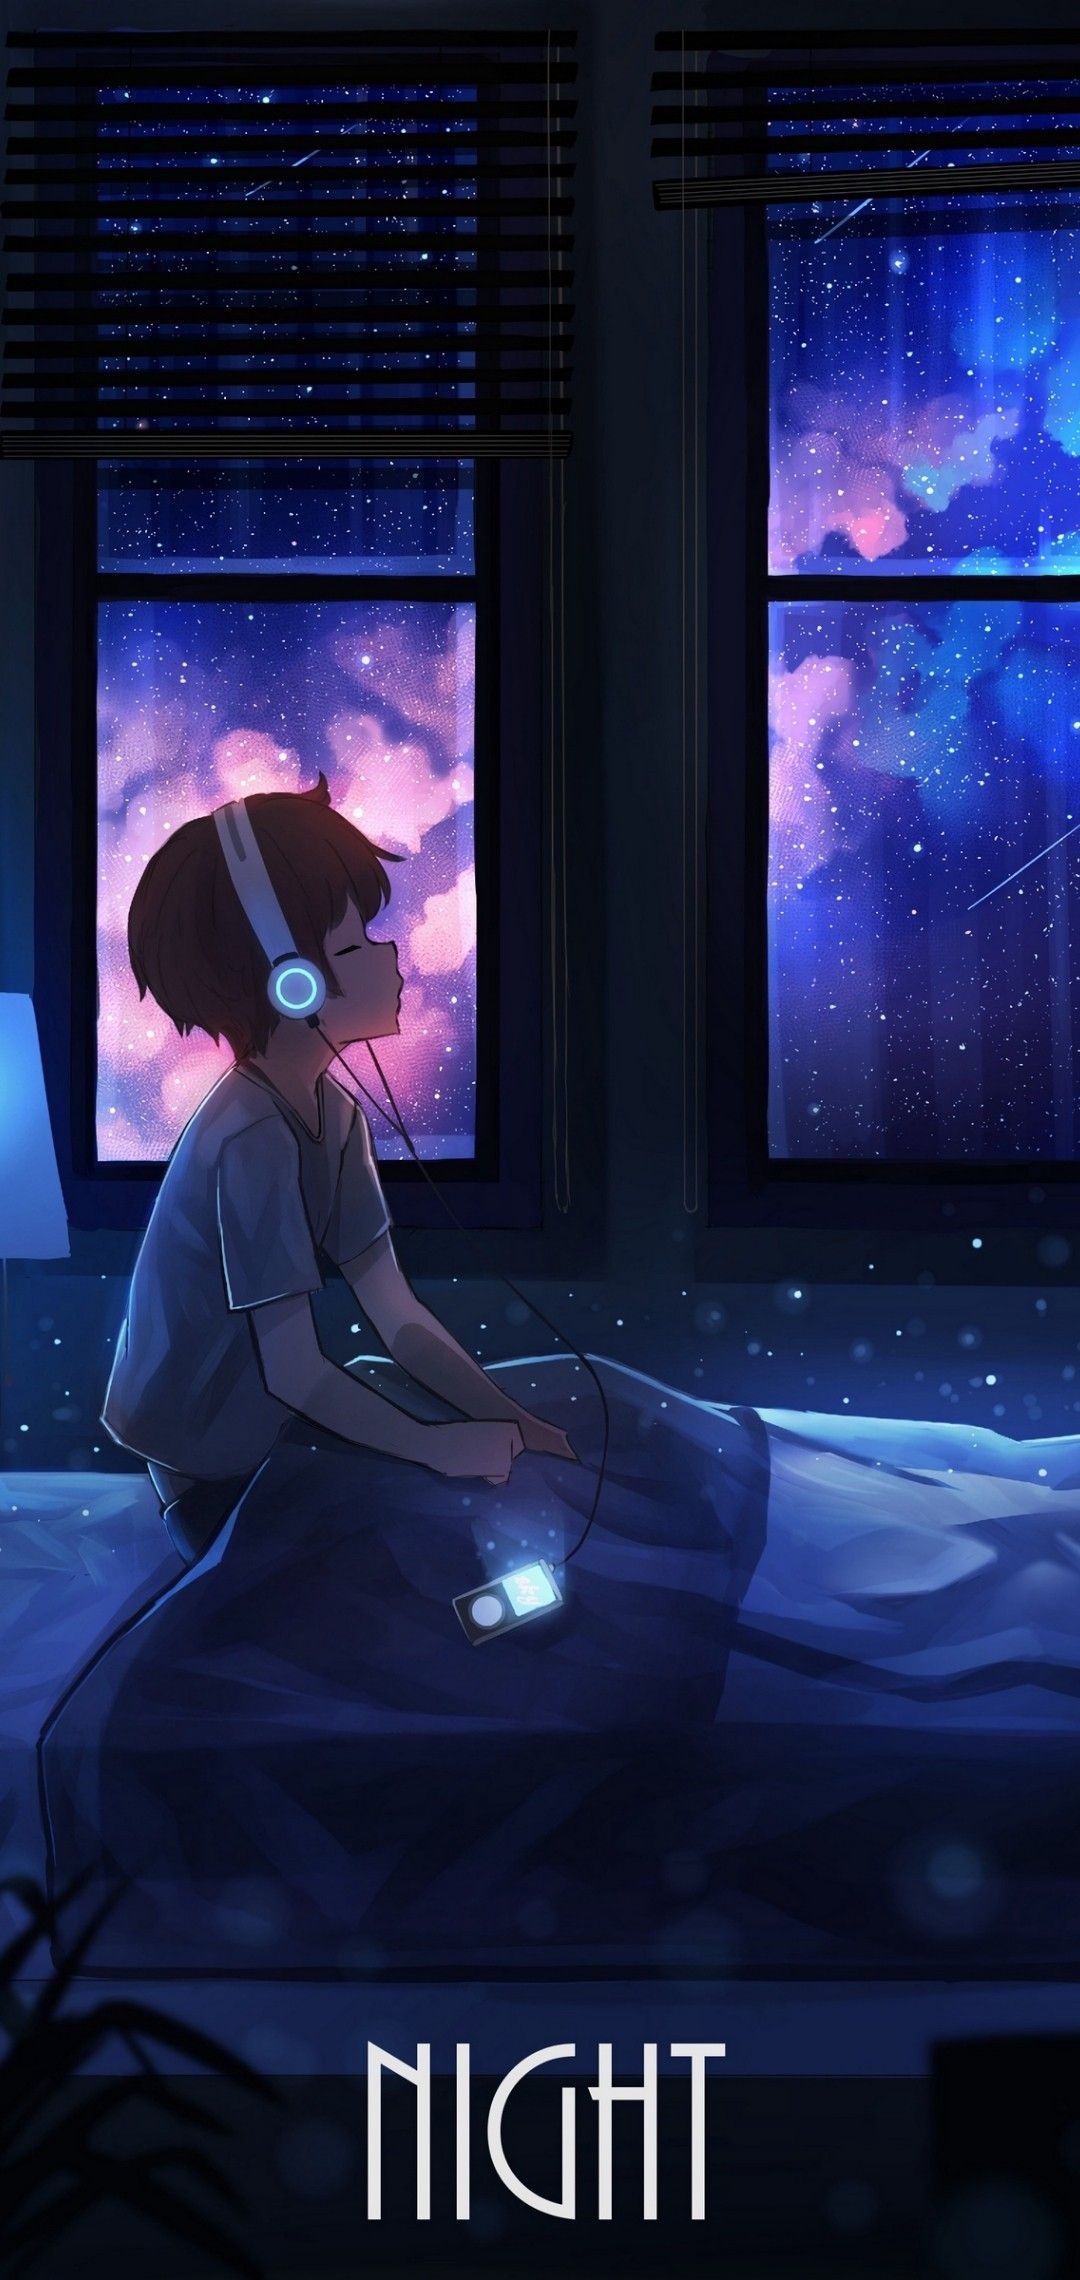 A Boy Listening Music In Night Anime Scenery Wallpaper Cool Anime Wallpapers Anime Backgrounds Wallpapers